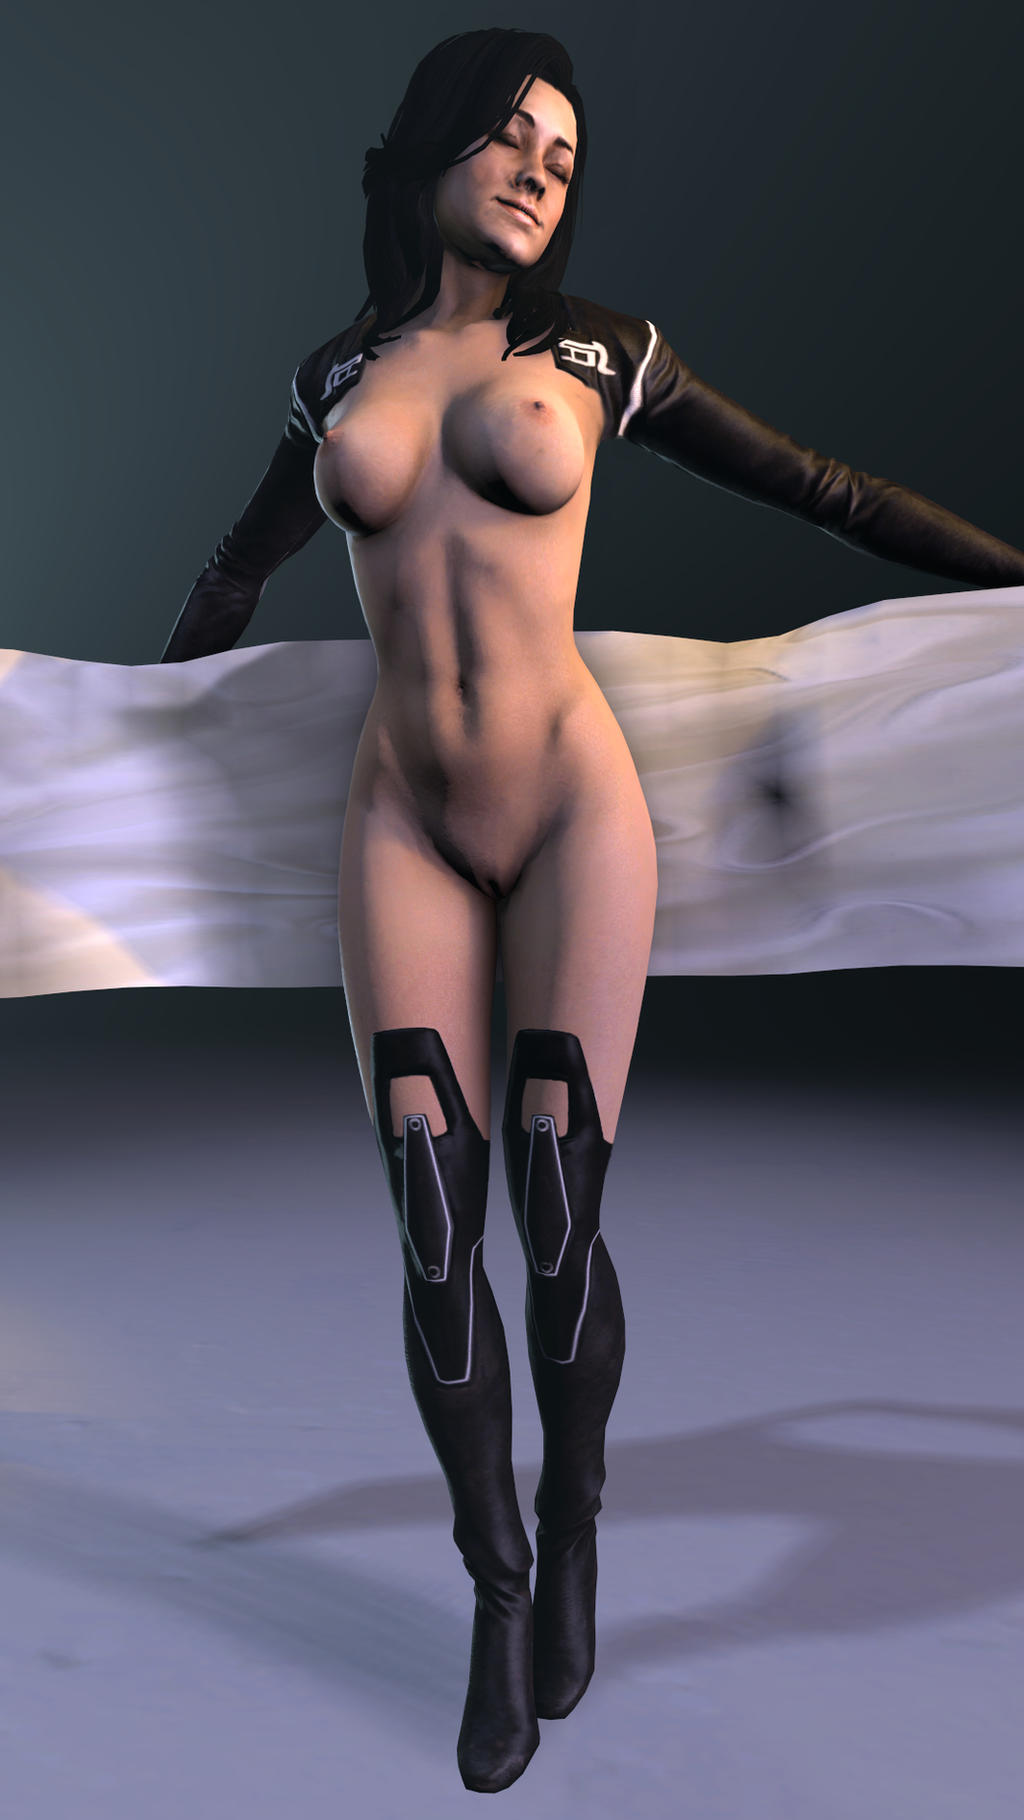 Hot nude mod for miranda me 2  fucking picture